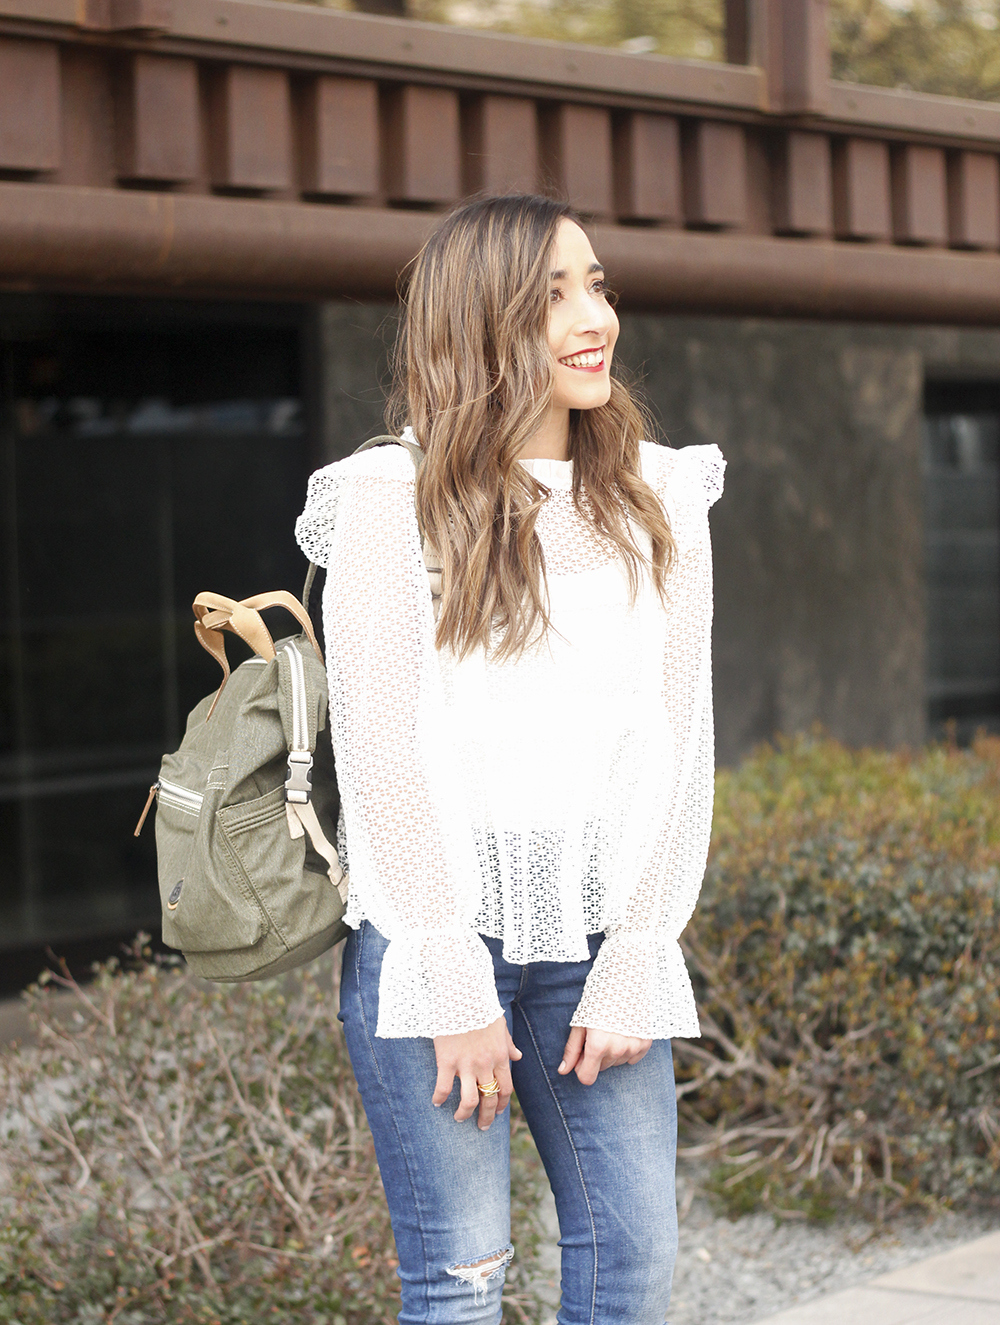 kipling backpack transformation collection khaki white lace blouse casual street style casual outfit 20199